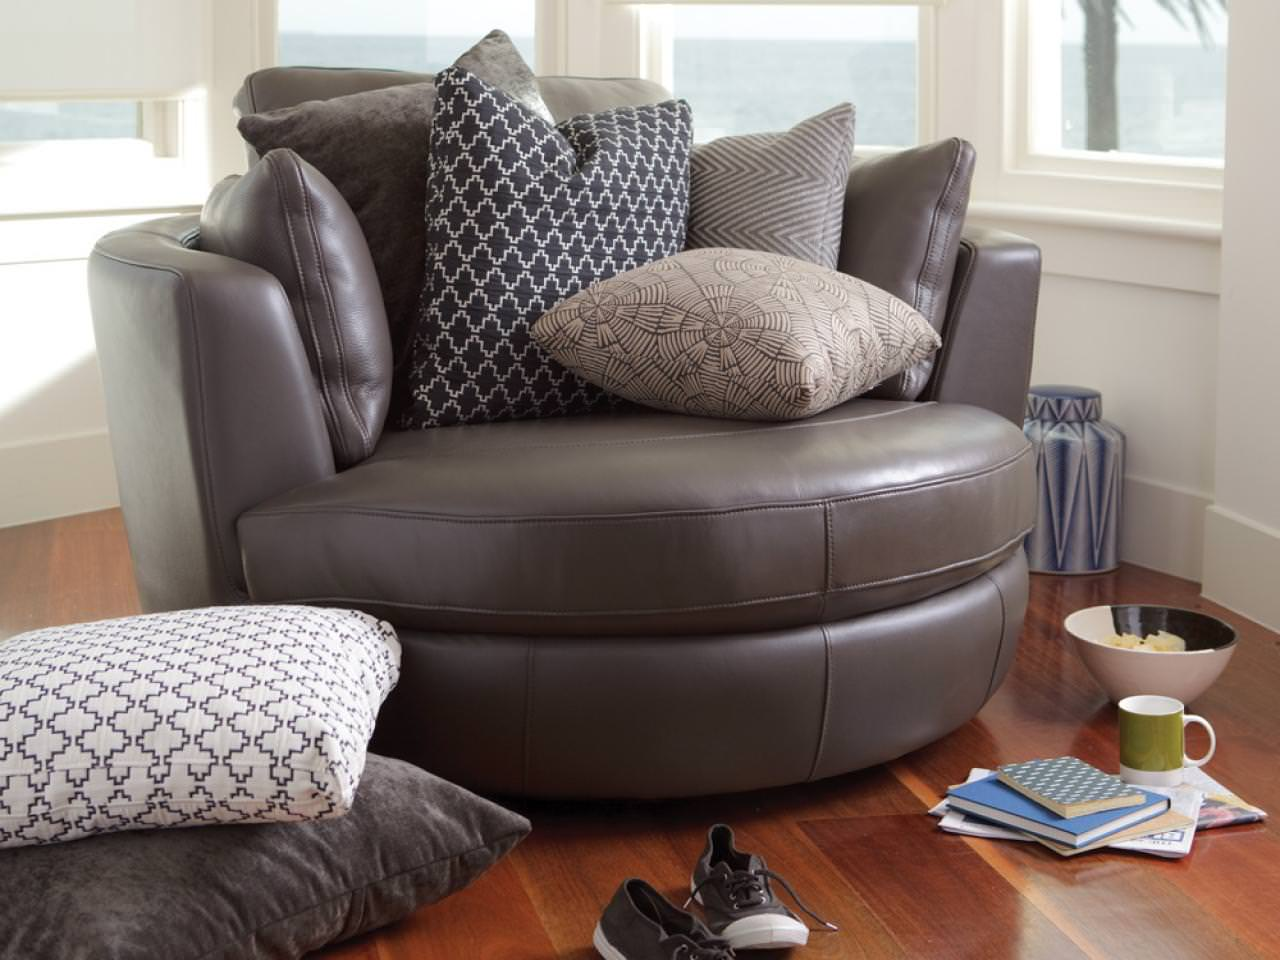 29 Inspiration Gallery from Cuddle Chair with Ottoman